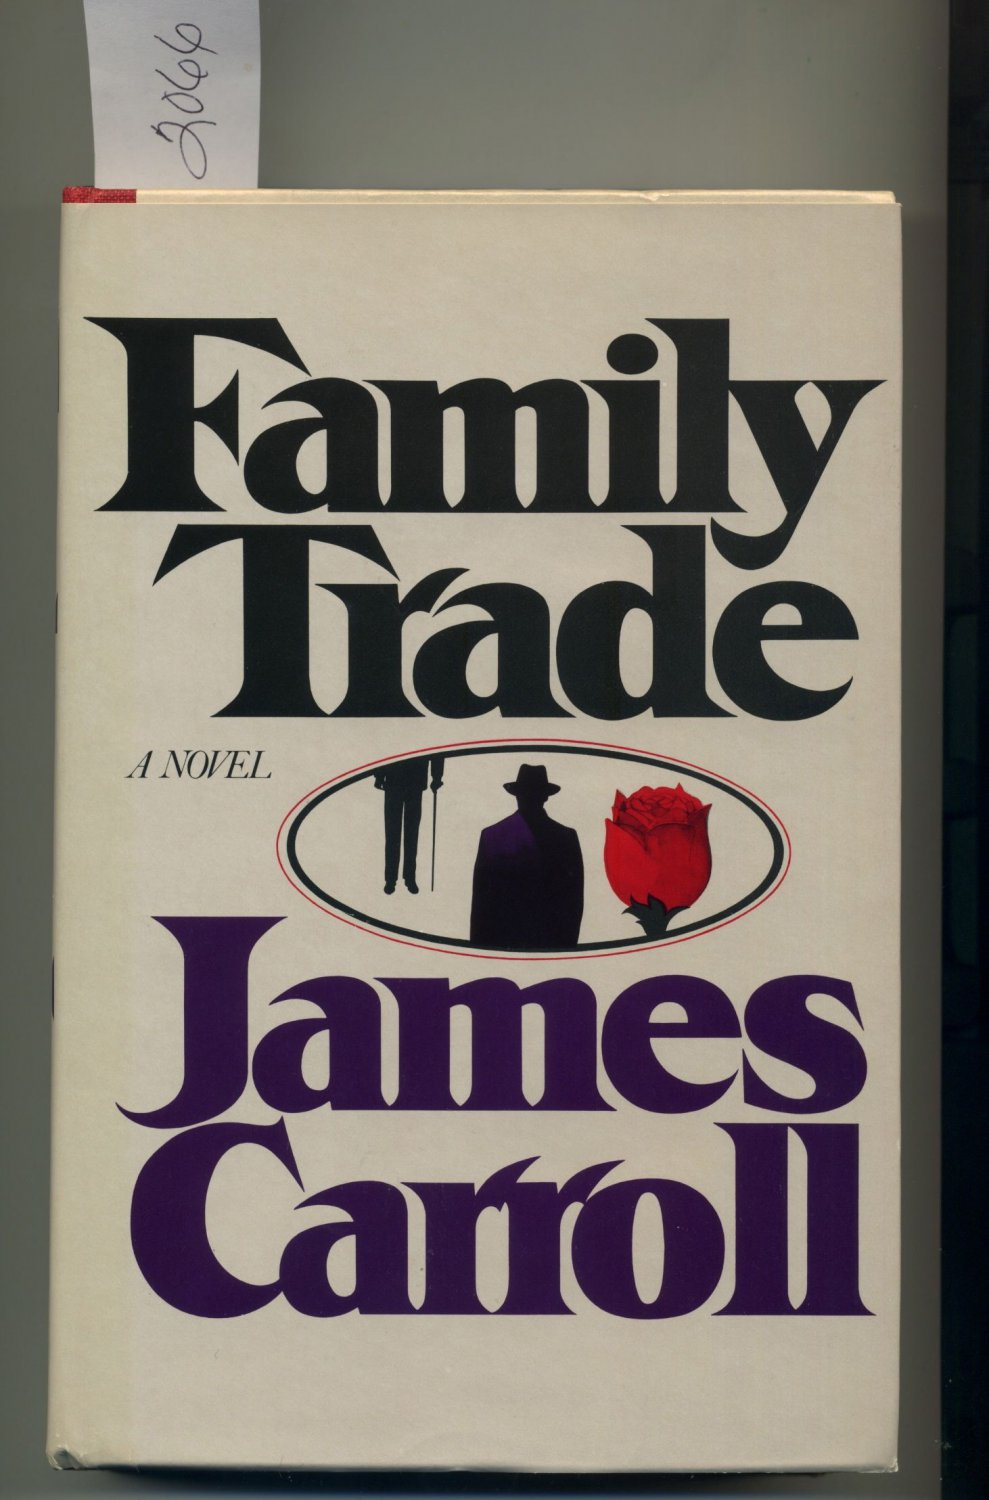 Family Trade by James Carroll Hardcover Book